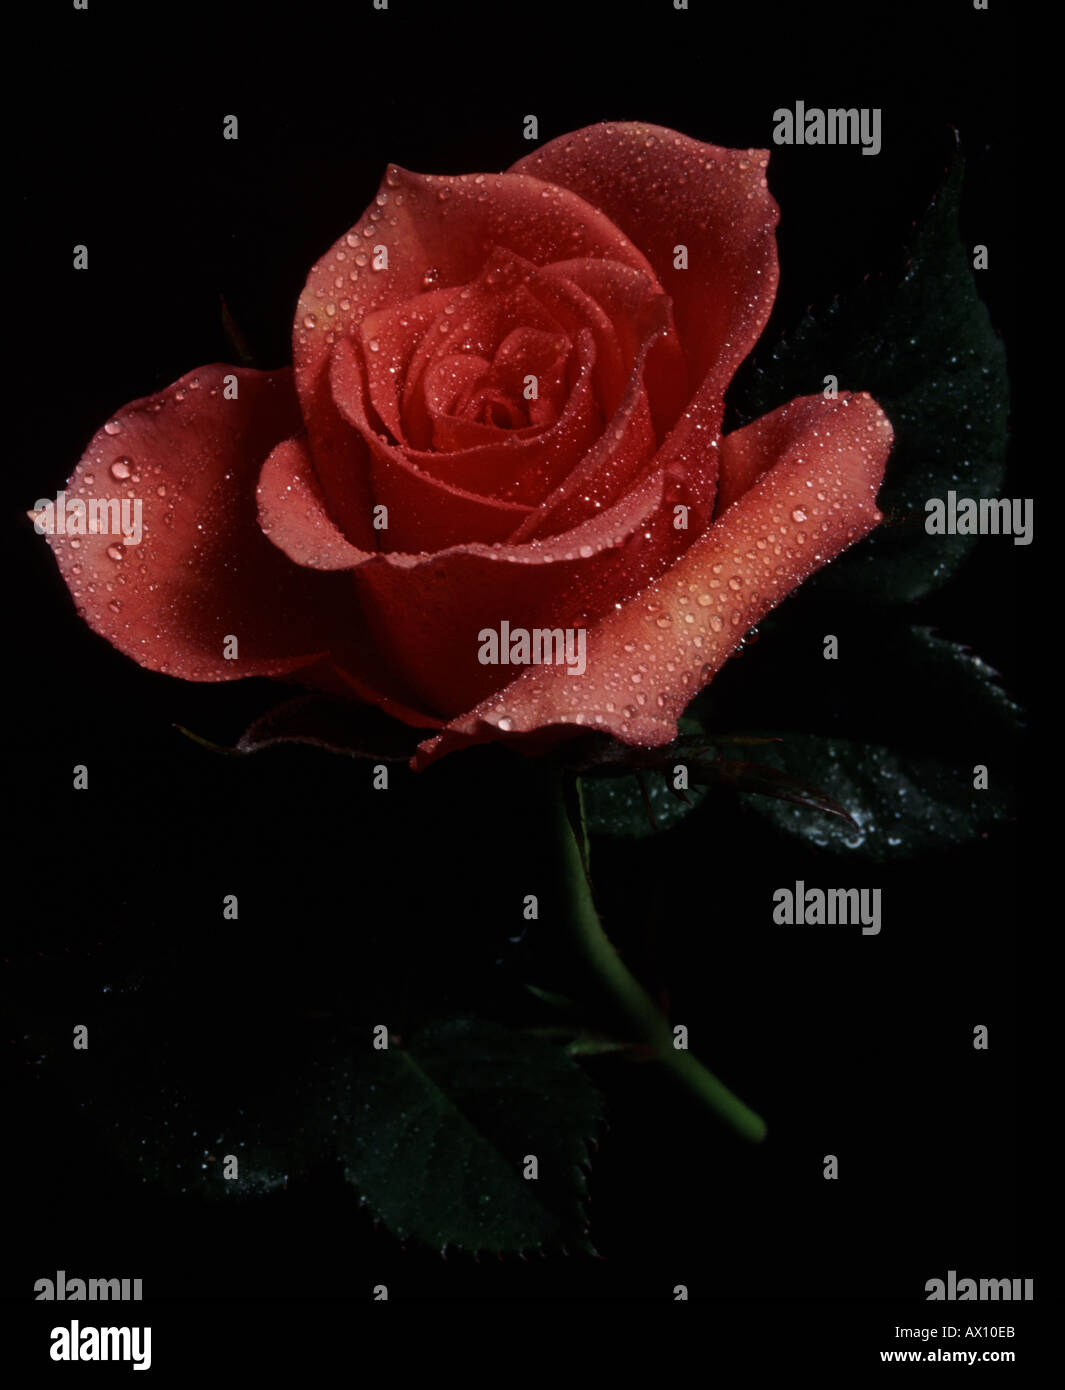 Pink rose with black background and Water droplets - Stock Image